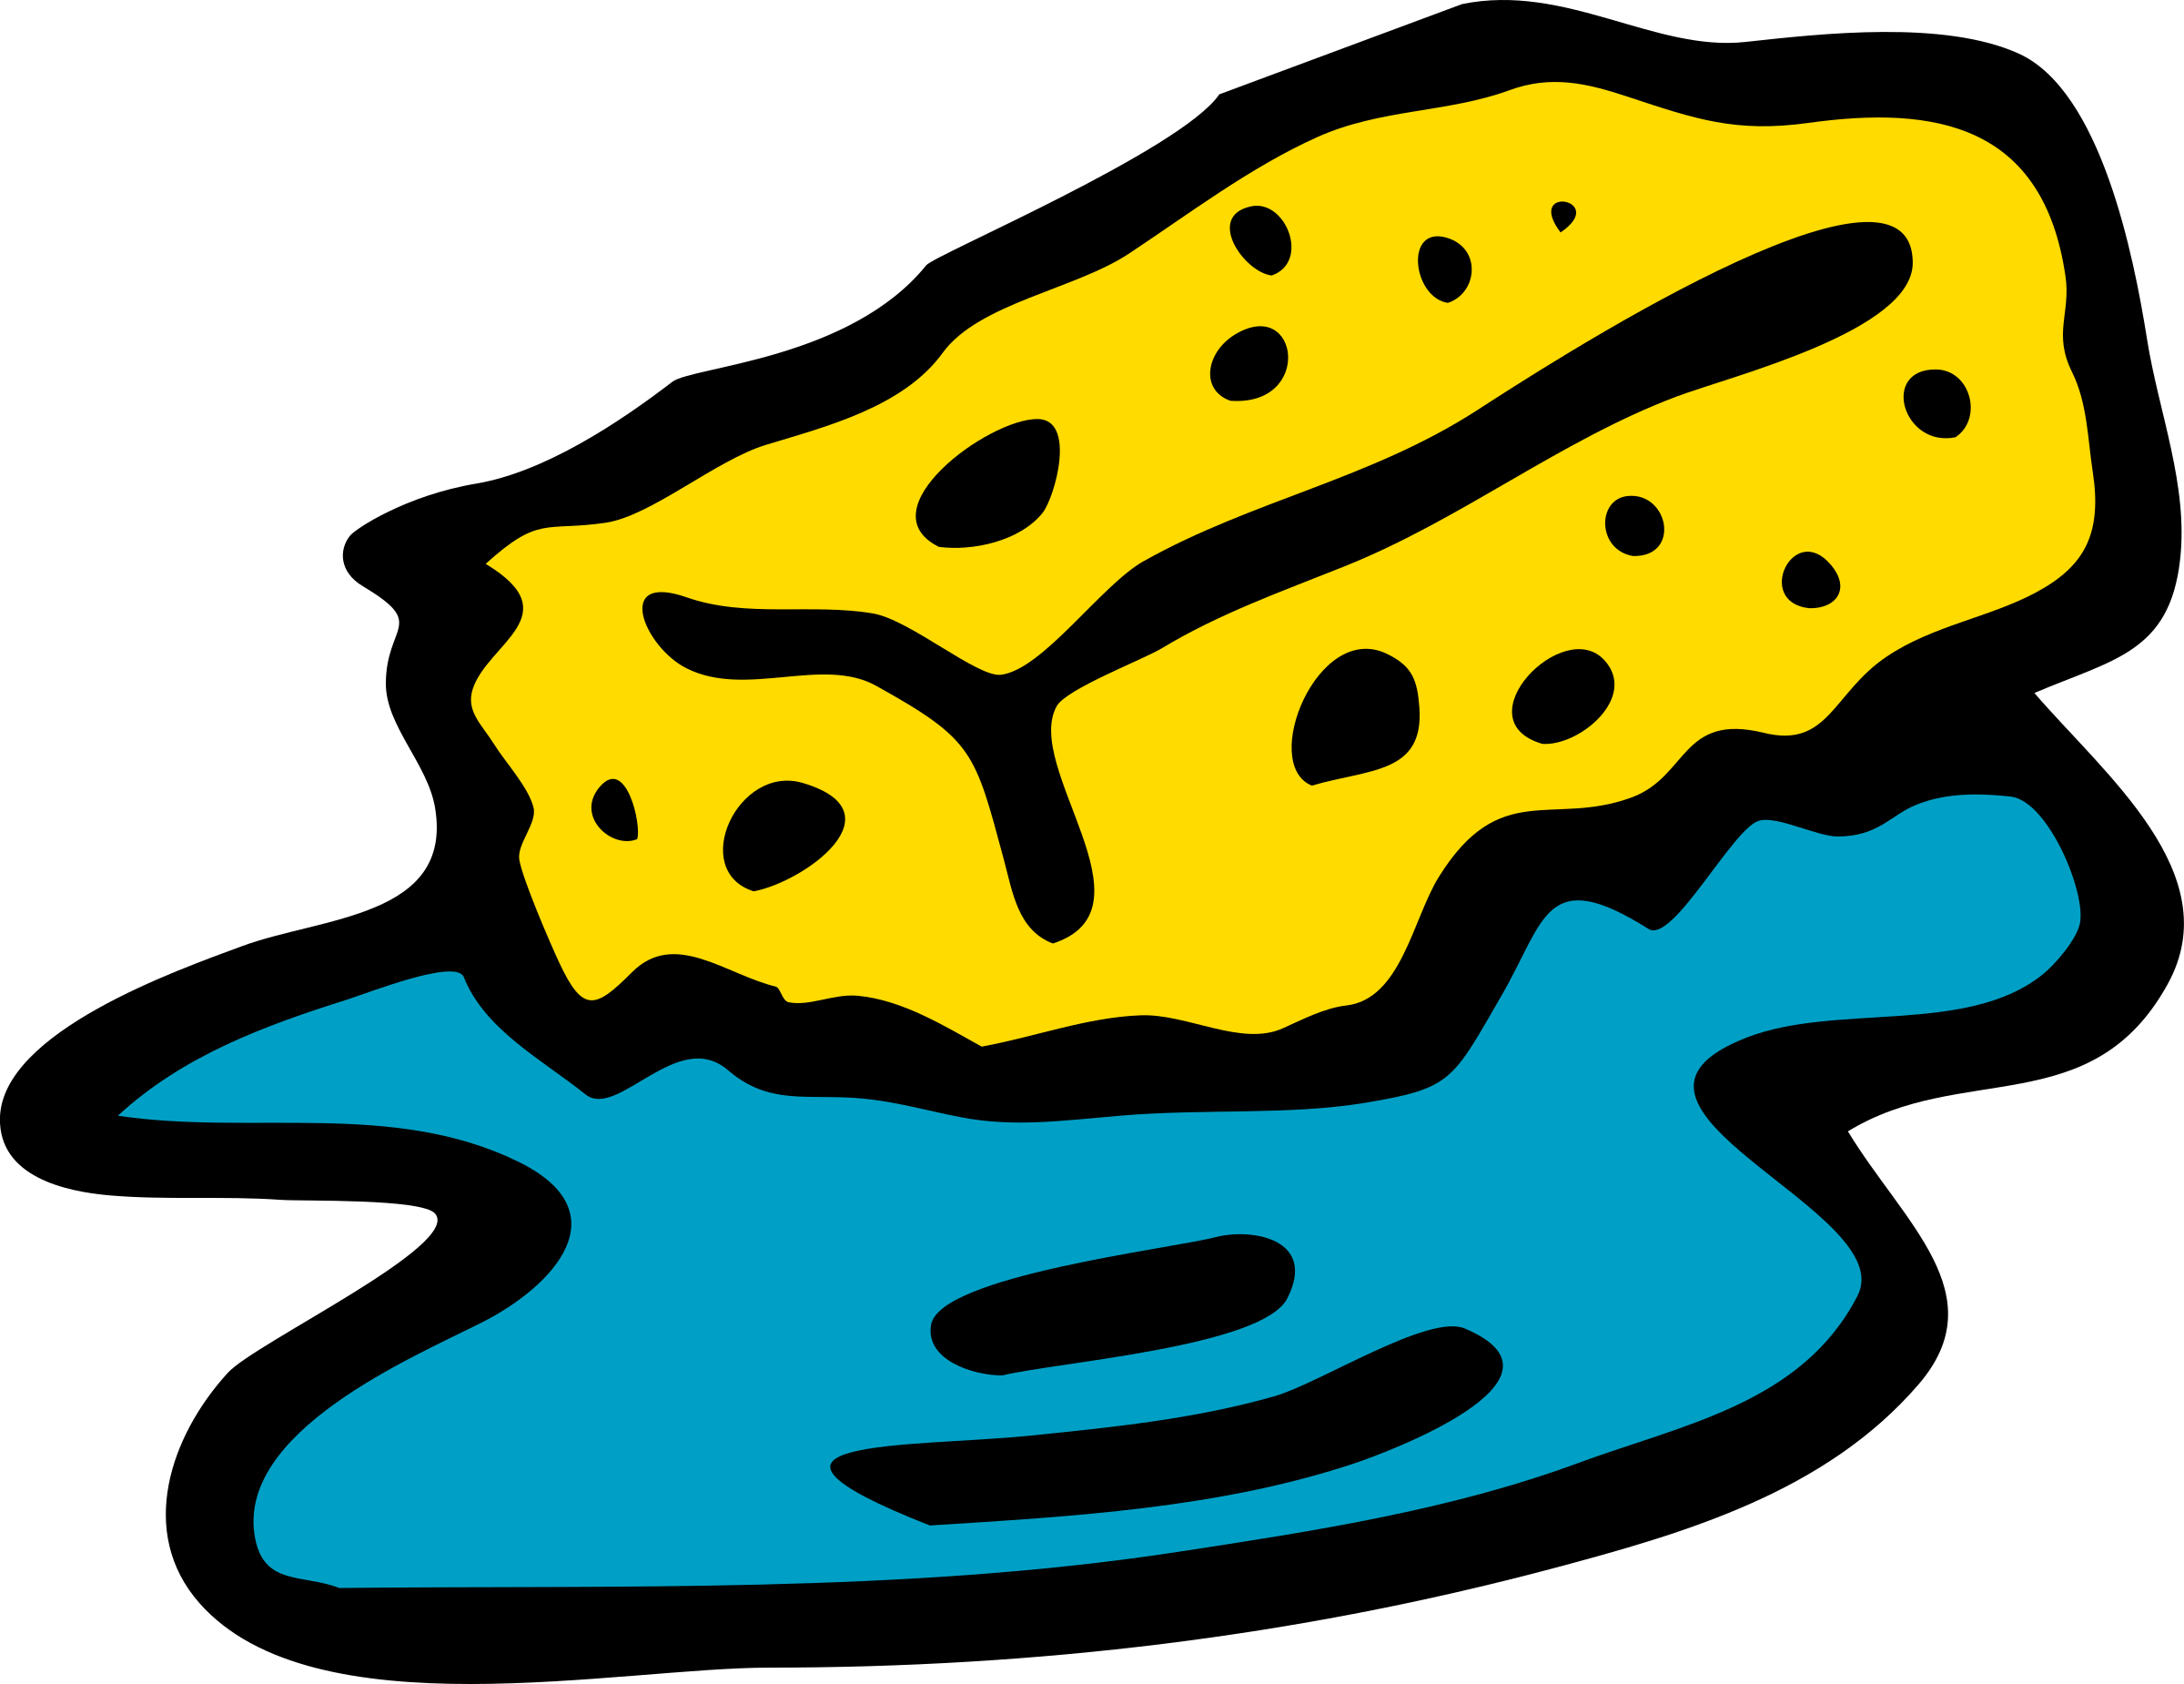 Sponges drawing under sea. Collection of free absorbition